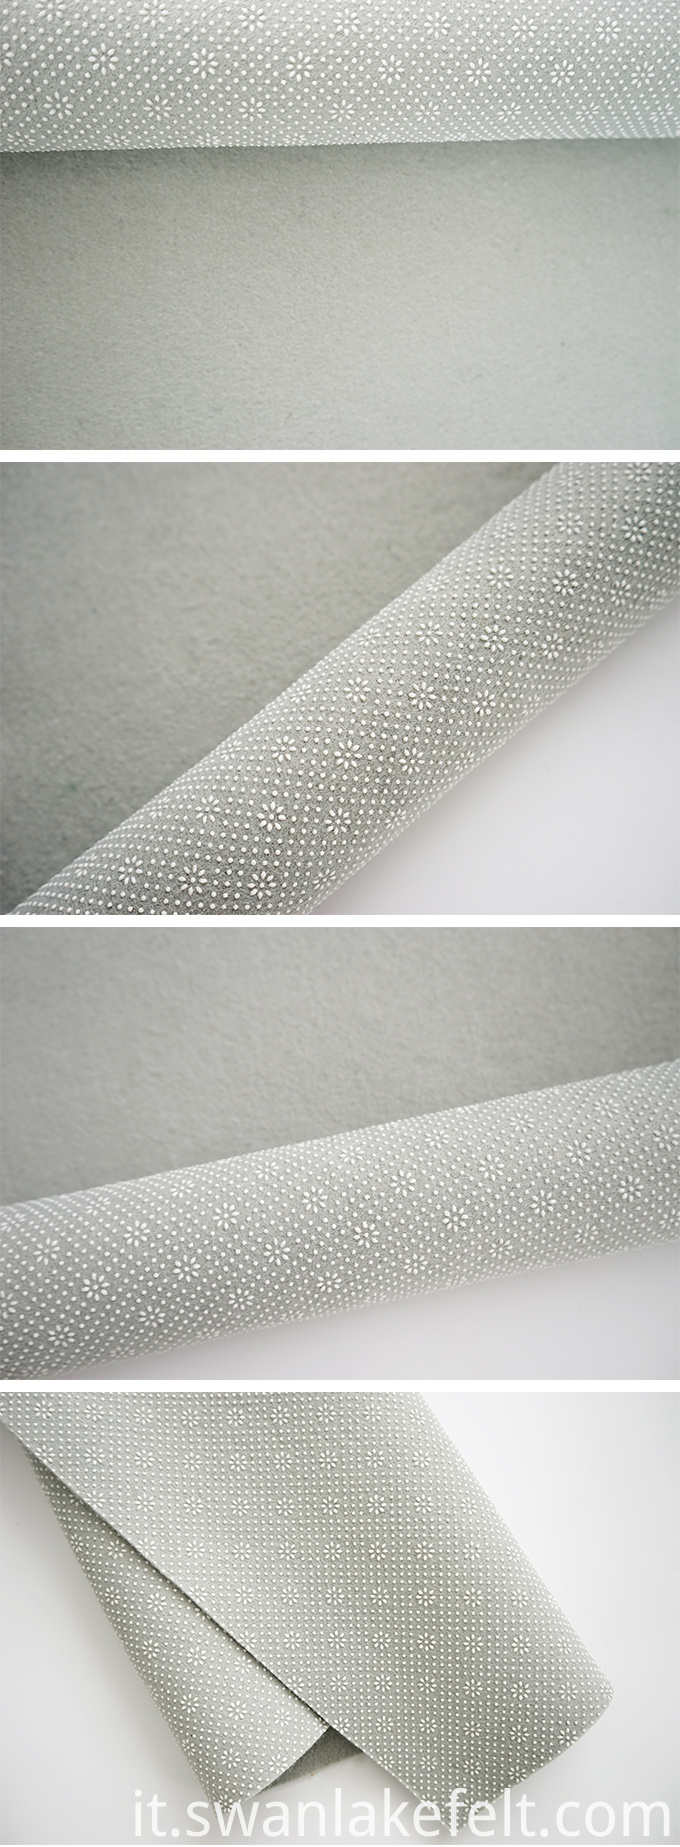 Nonwoven Backing Fabric